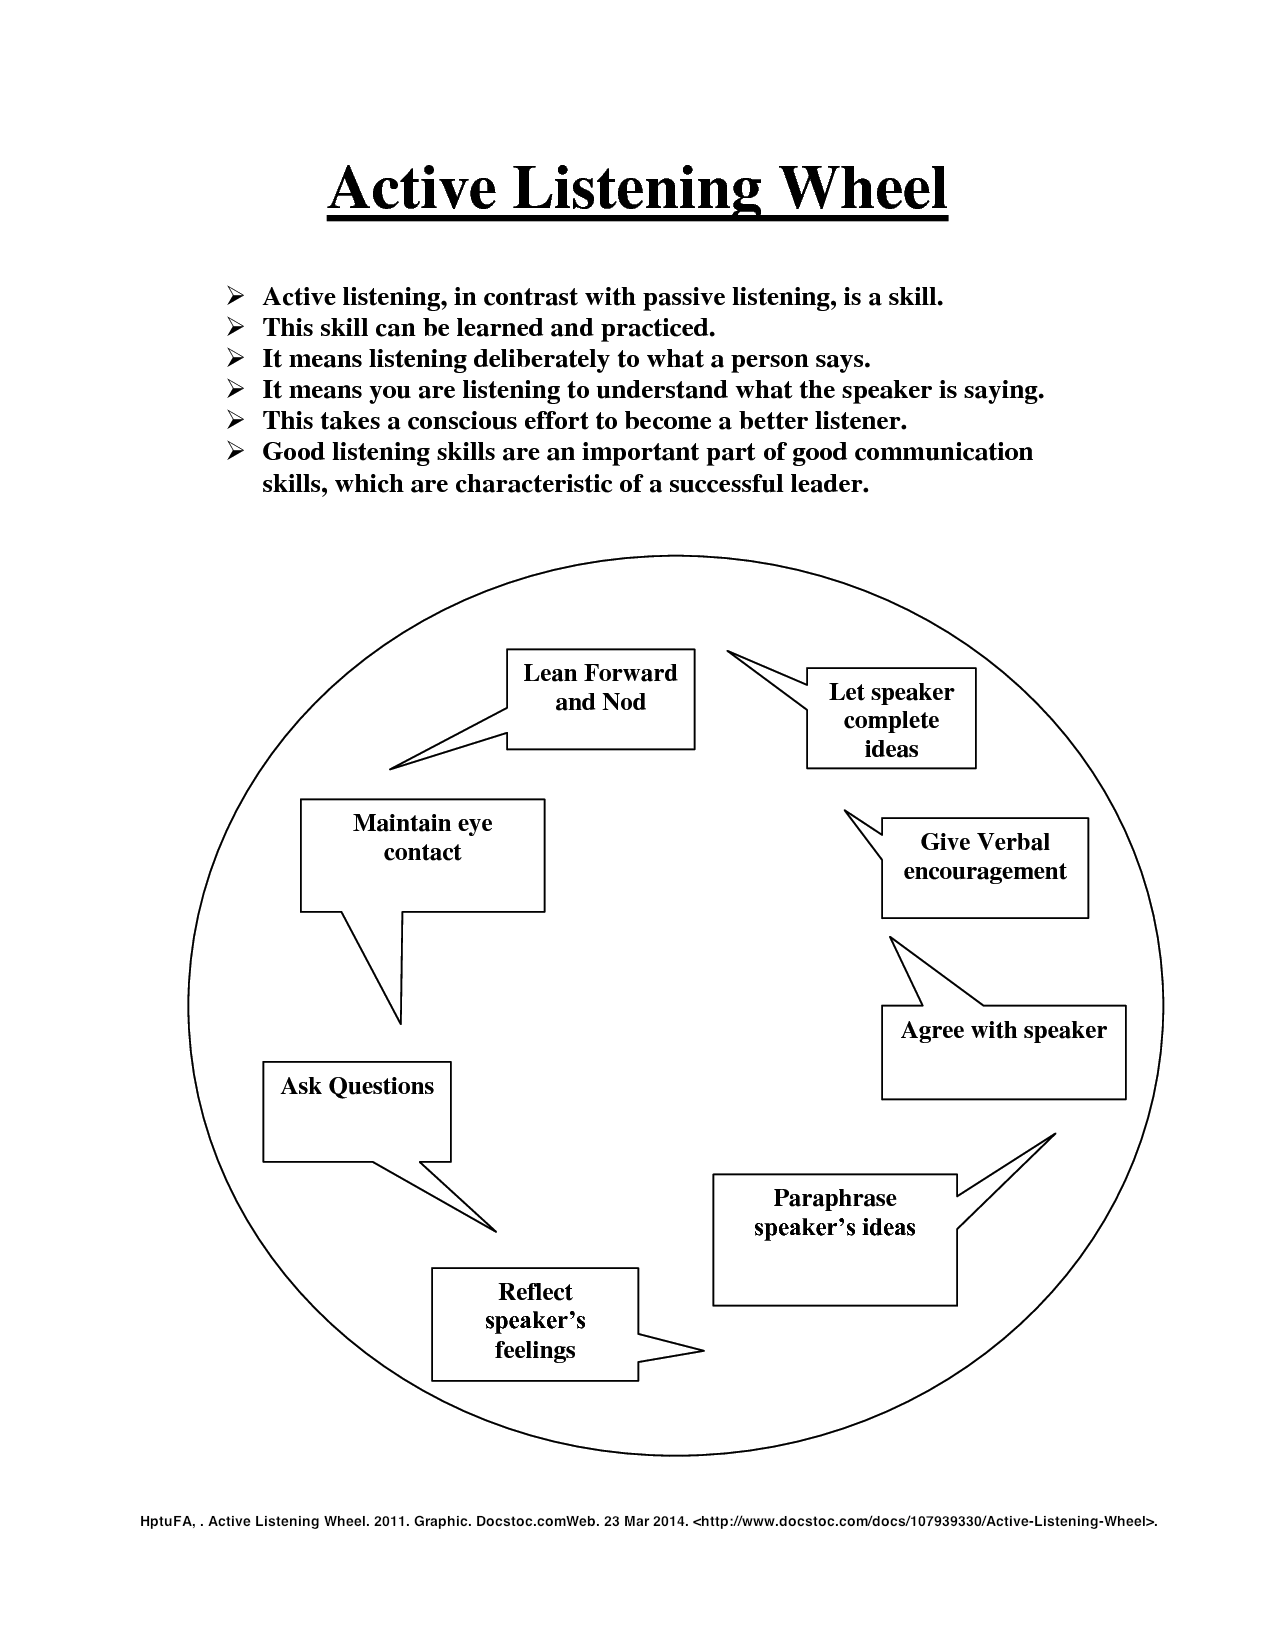 Worksheets Listening Skills Worksheets active listening is a skill that needs practice you can use this graphic organizer to refine your skills individual communicat